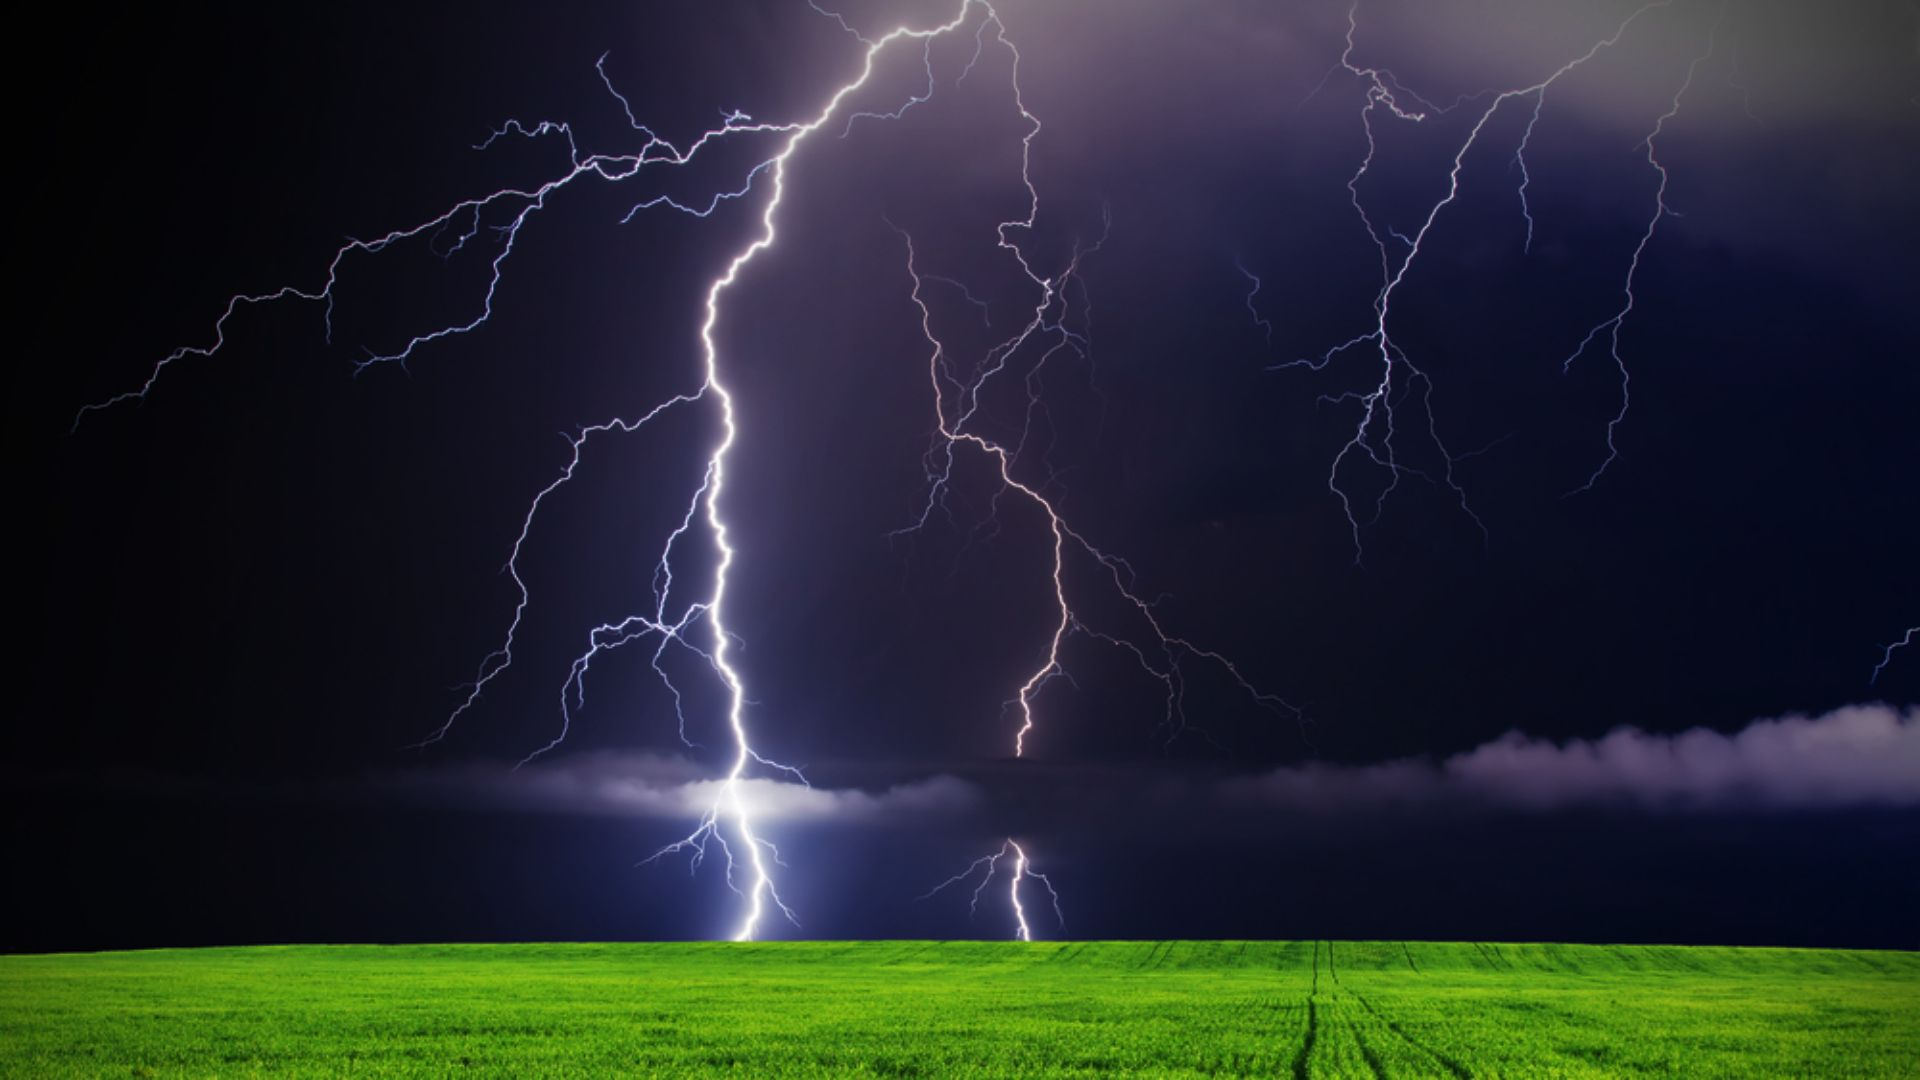 Lightning Storm Wallpapers HD 1920x1080